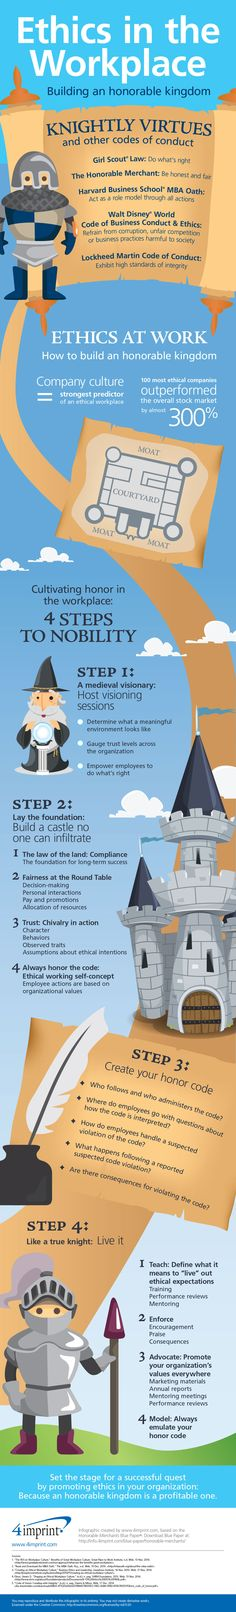 4imprint's Ethics in the Workplace infographic offers organizations a four-step guide to instill honor and ethics in the workplace.